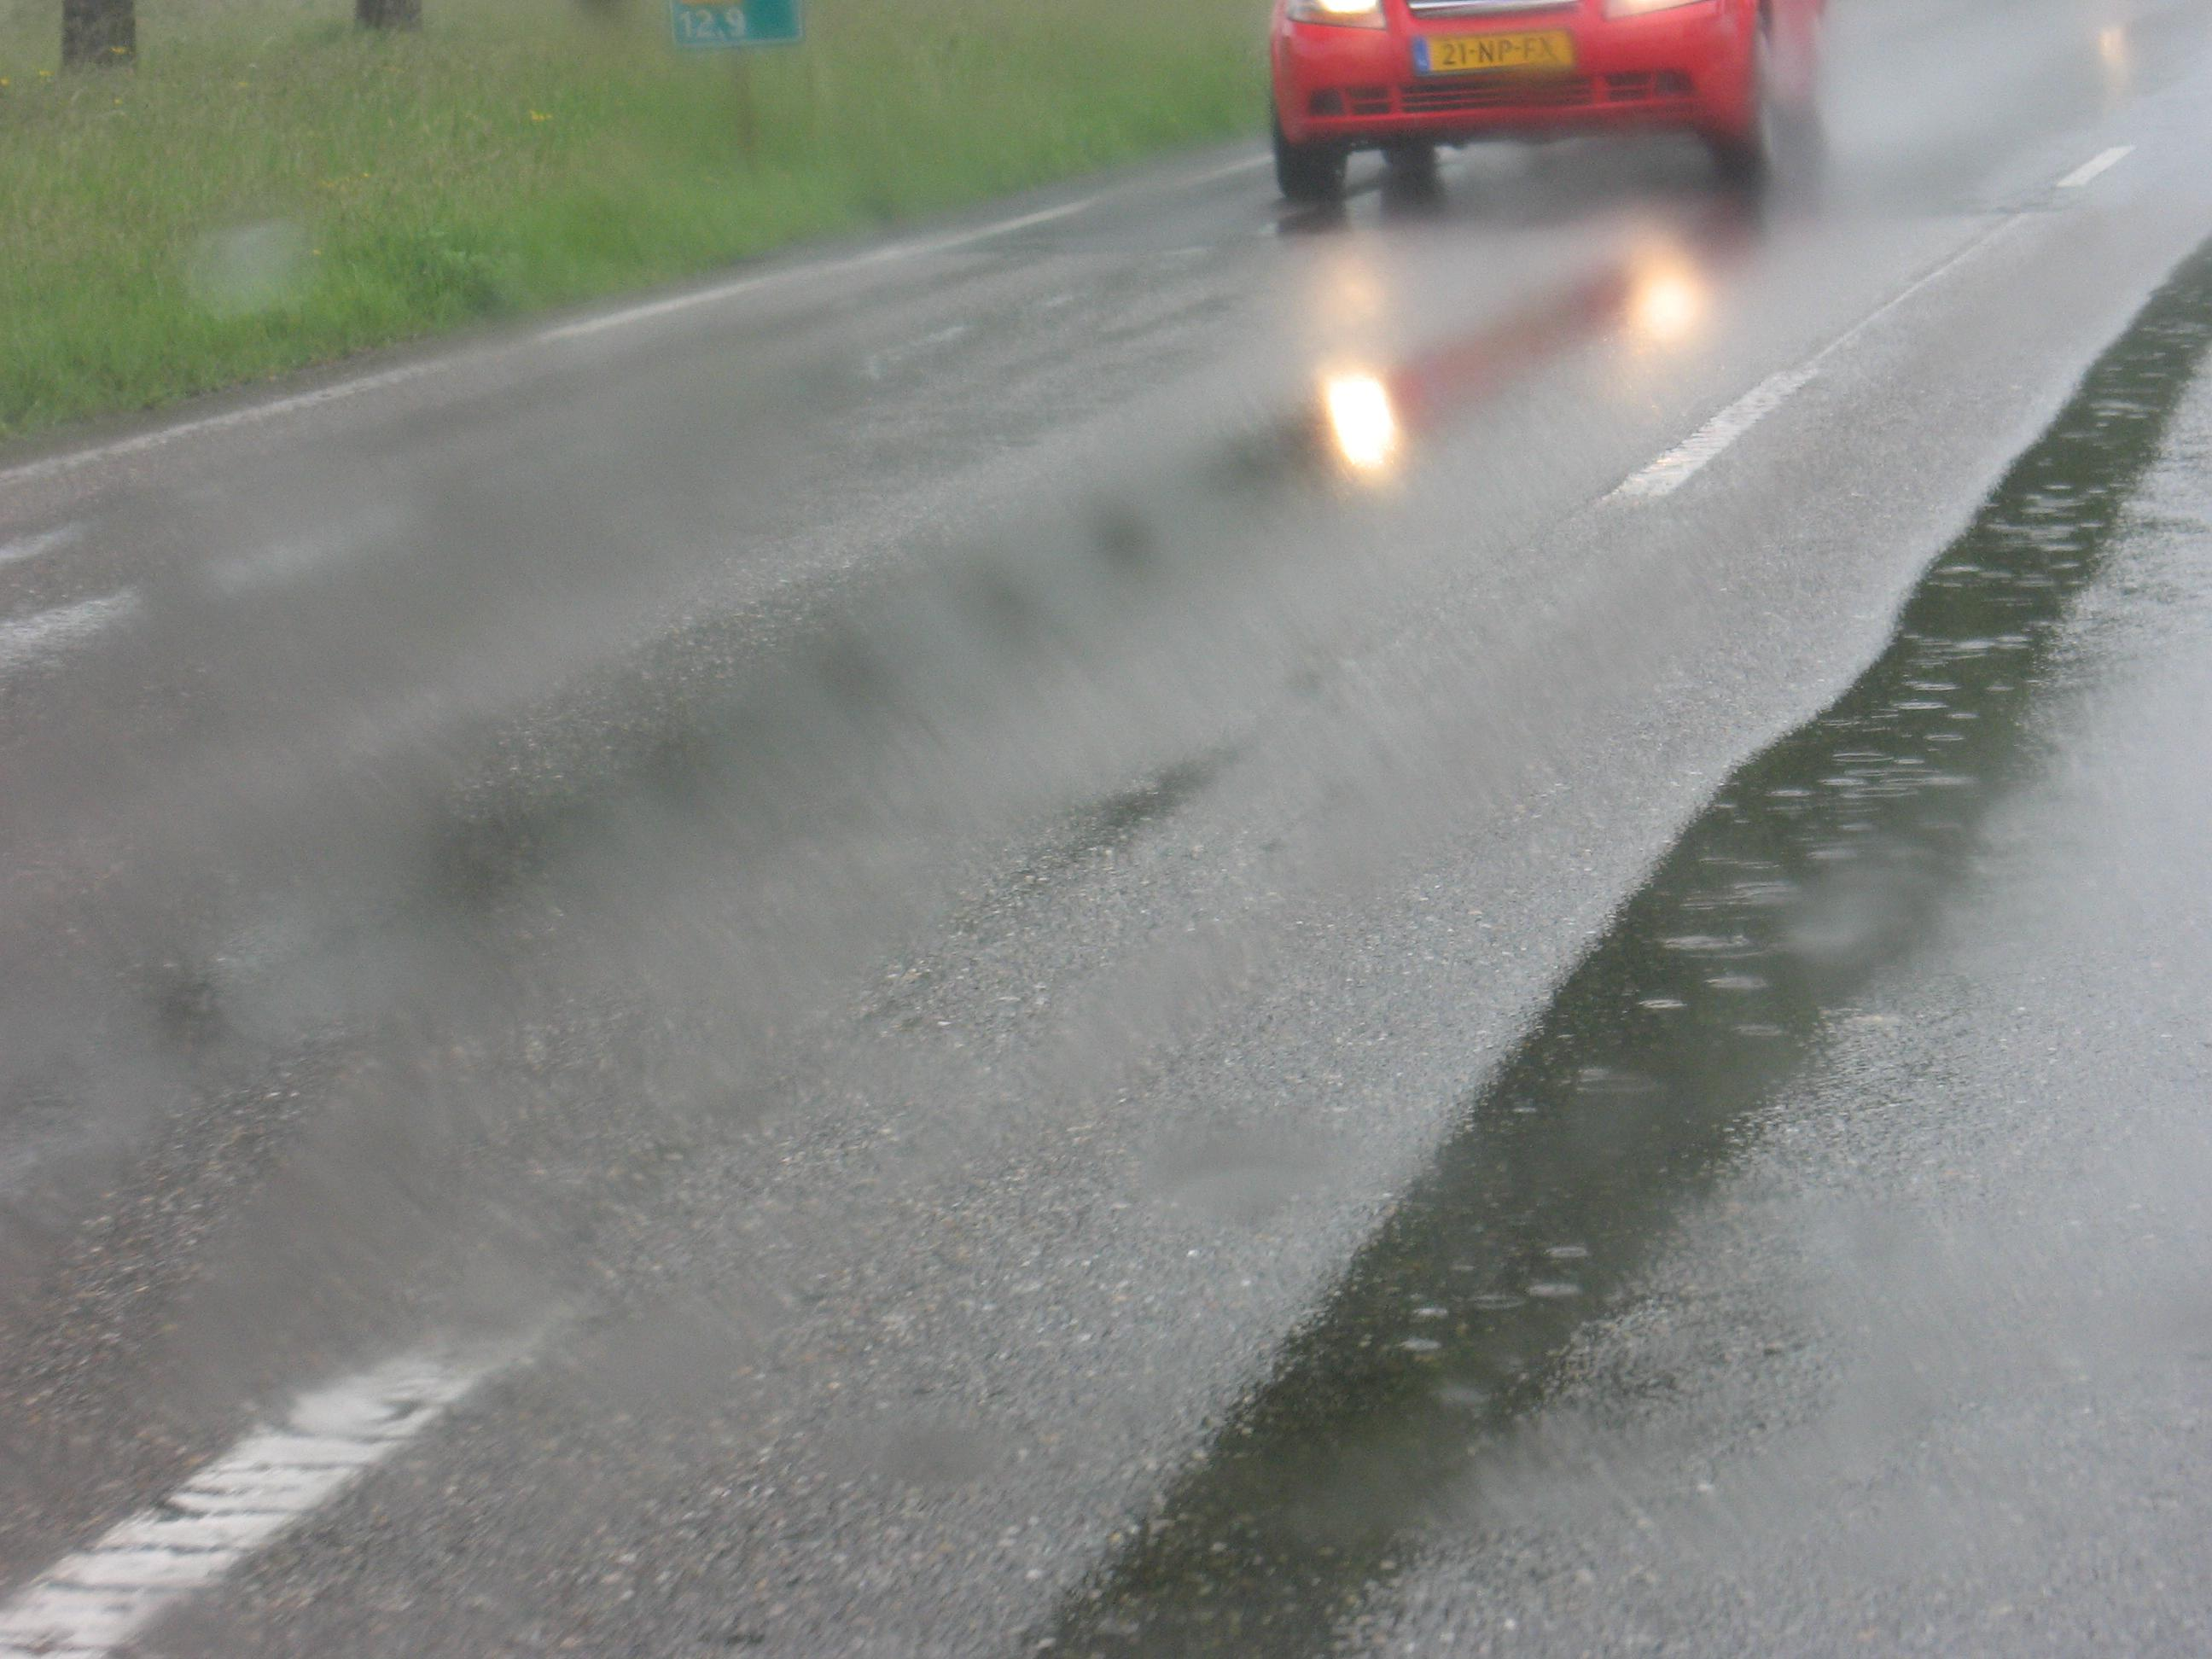 Roadway Hydroplaning – A Framework to Determine Critical